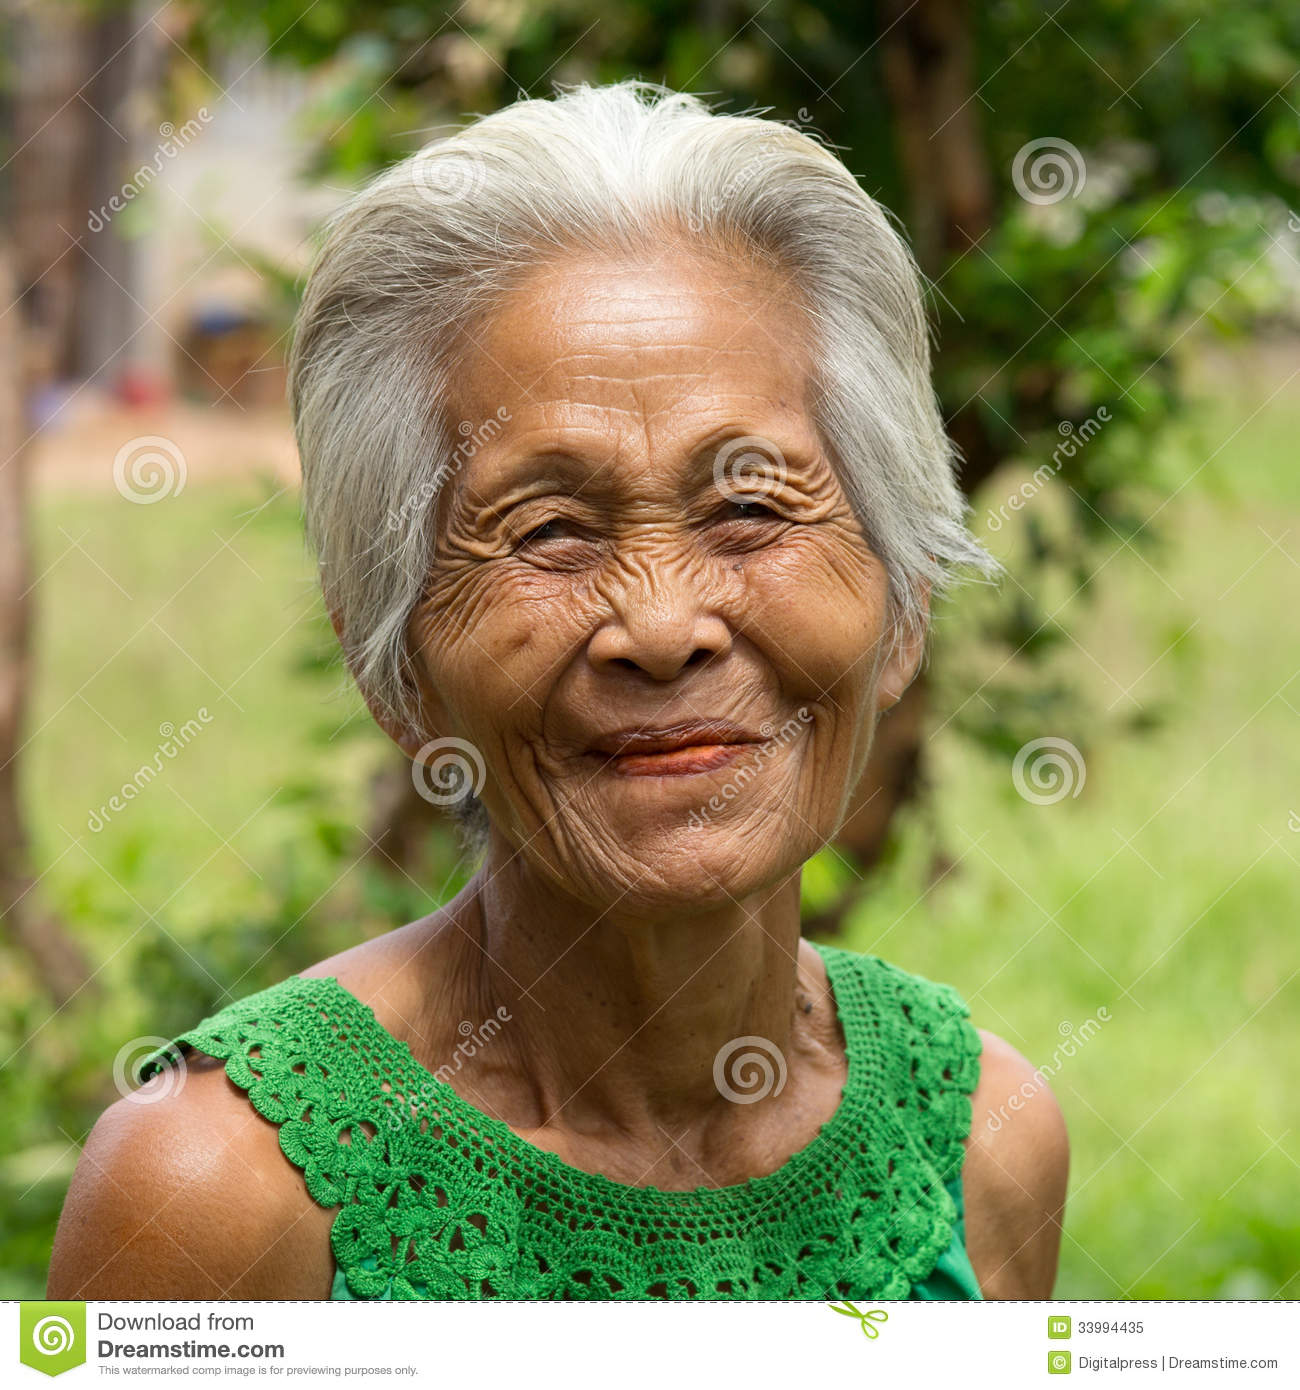 from Harry pussy pictures of old wrinkled women